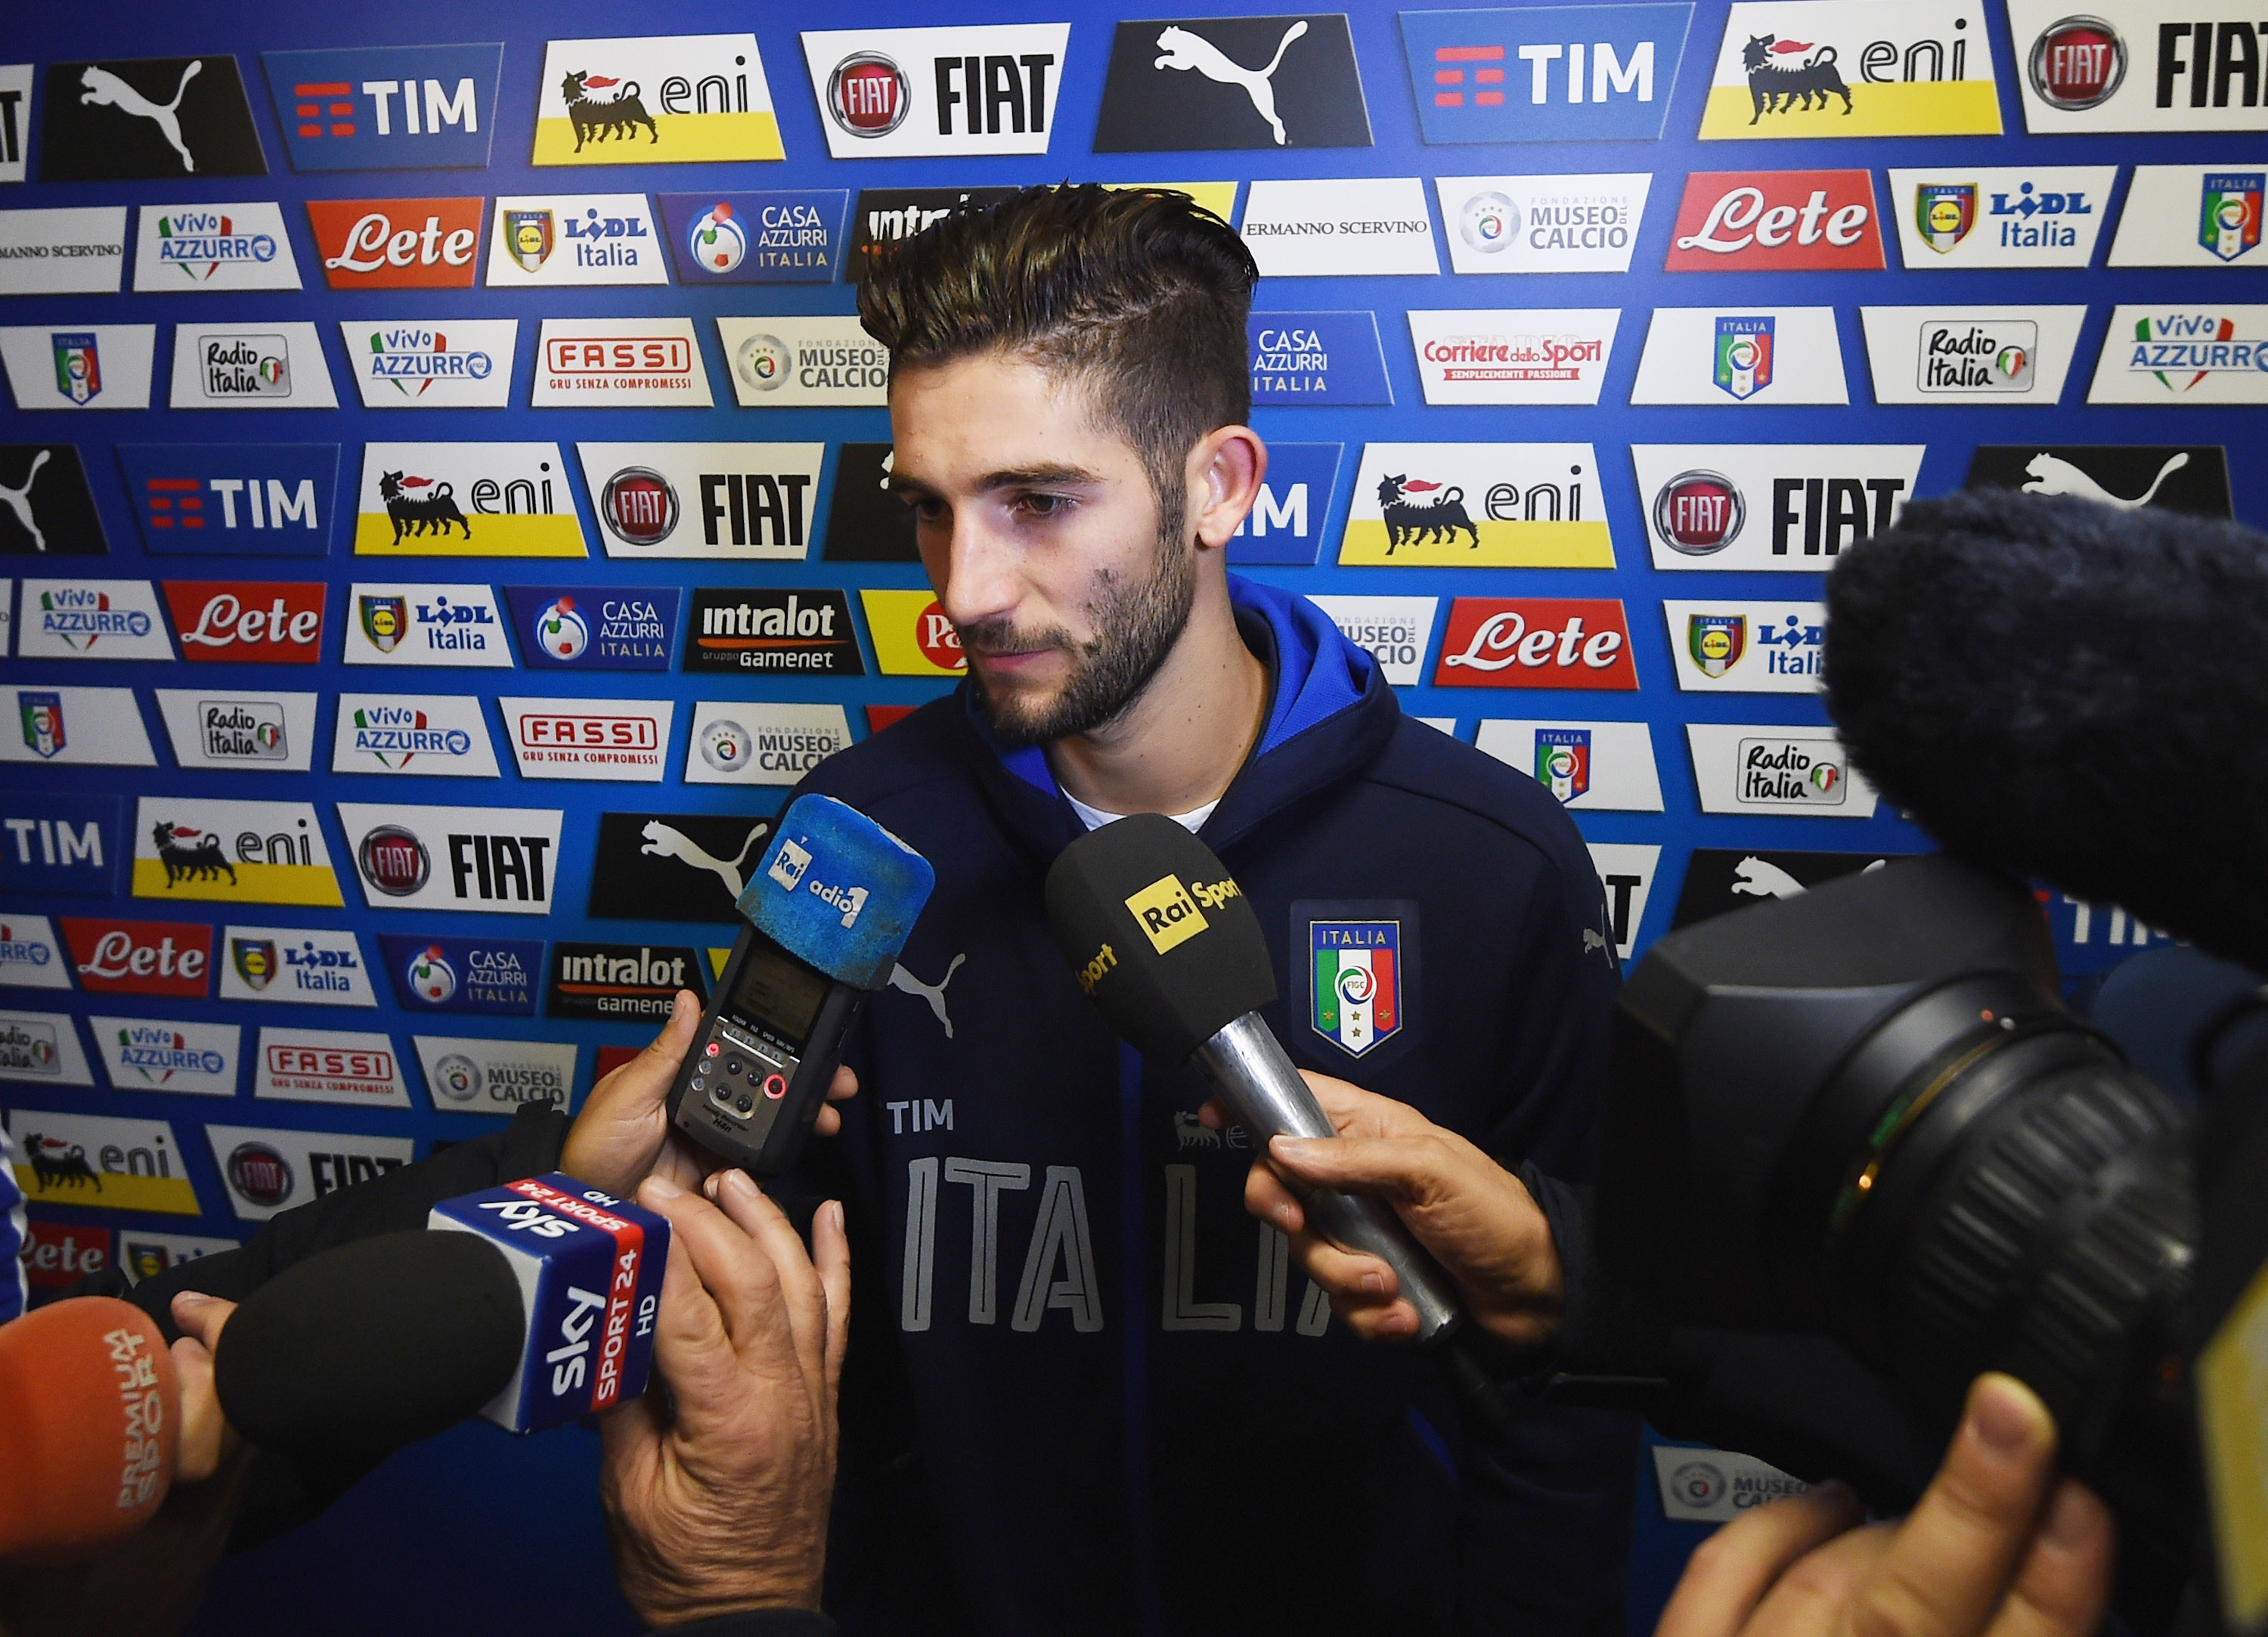 FLORENCE, ITALY - NOVEMBER 09: Roberto Gagliardini of Italy speaks to the media during a press conference at the club's training ground at Coverciano on November 9, 2016 in Florence, Italy. (Photo by Claudio Villa/Getty Images)